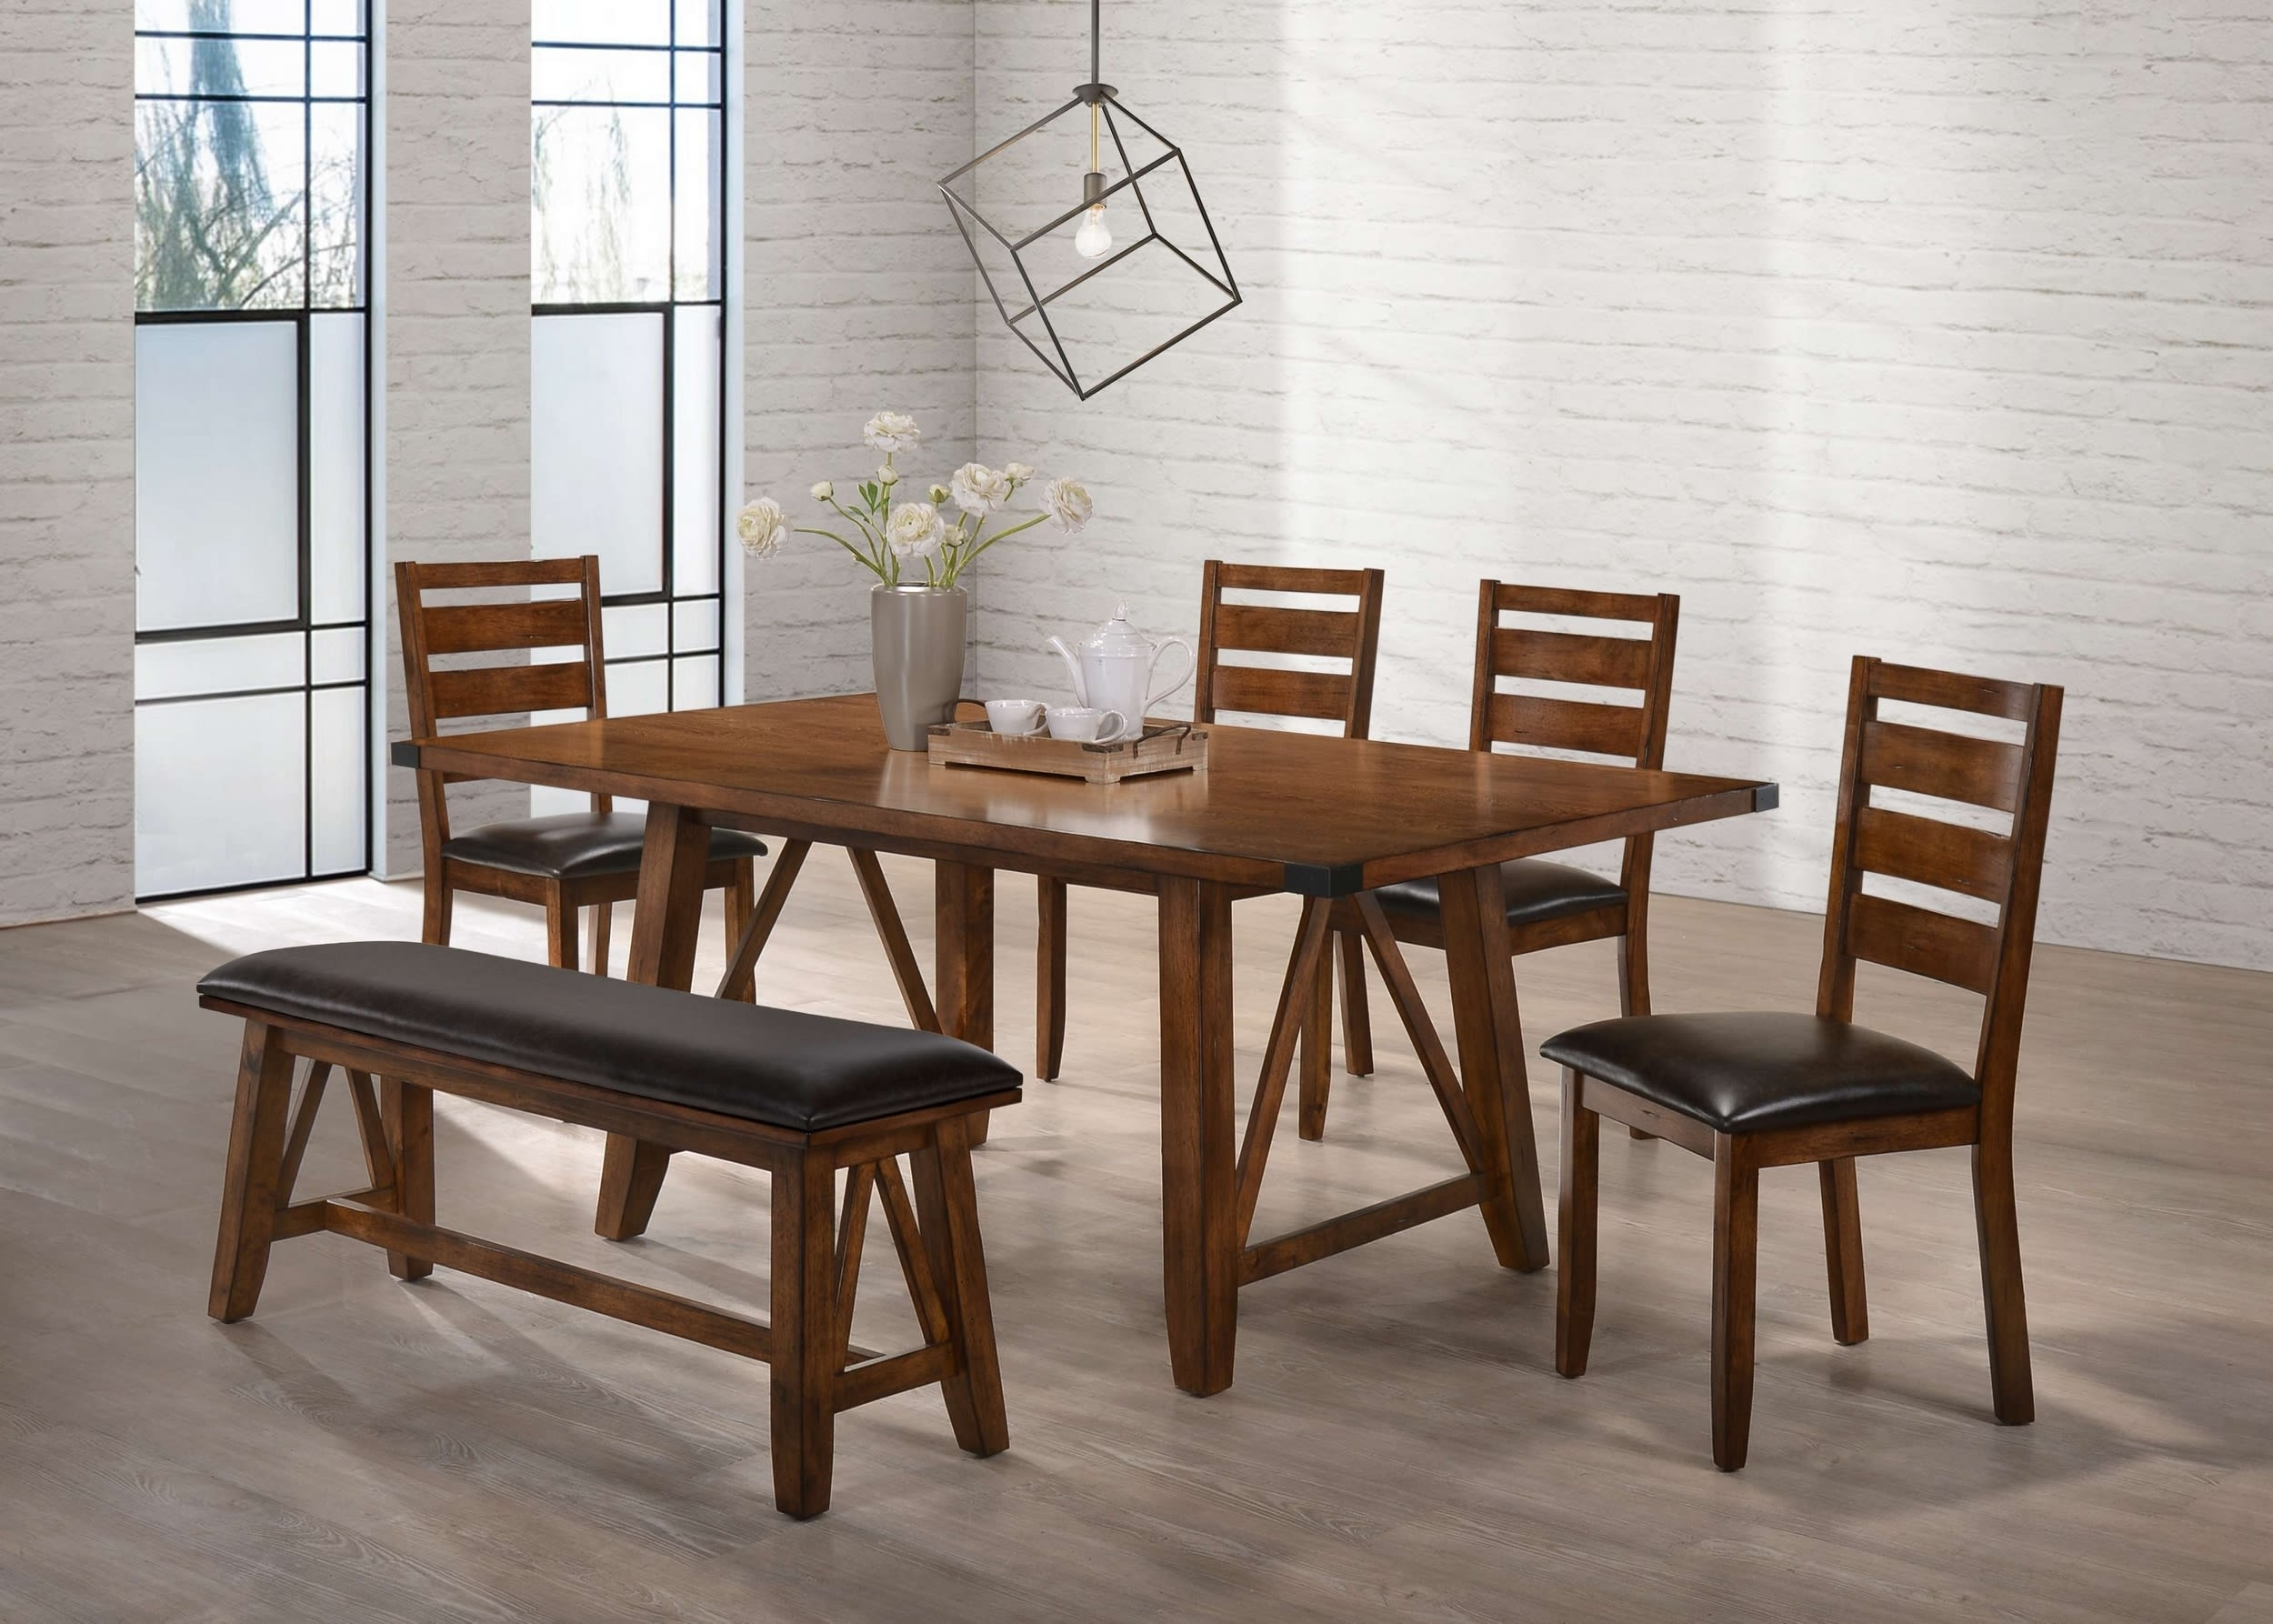 Simmons Upholstery 5022 72, 5022 51, 5022 52, 5022 52 Logan Valsp With Regard To Newest Logan 6 Piece Dining Sets (Image 15 of 20)